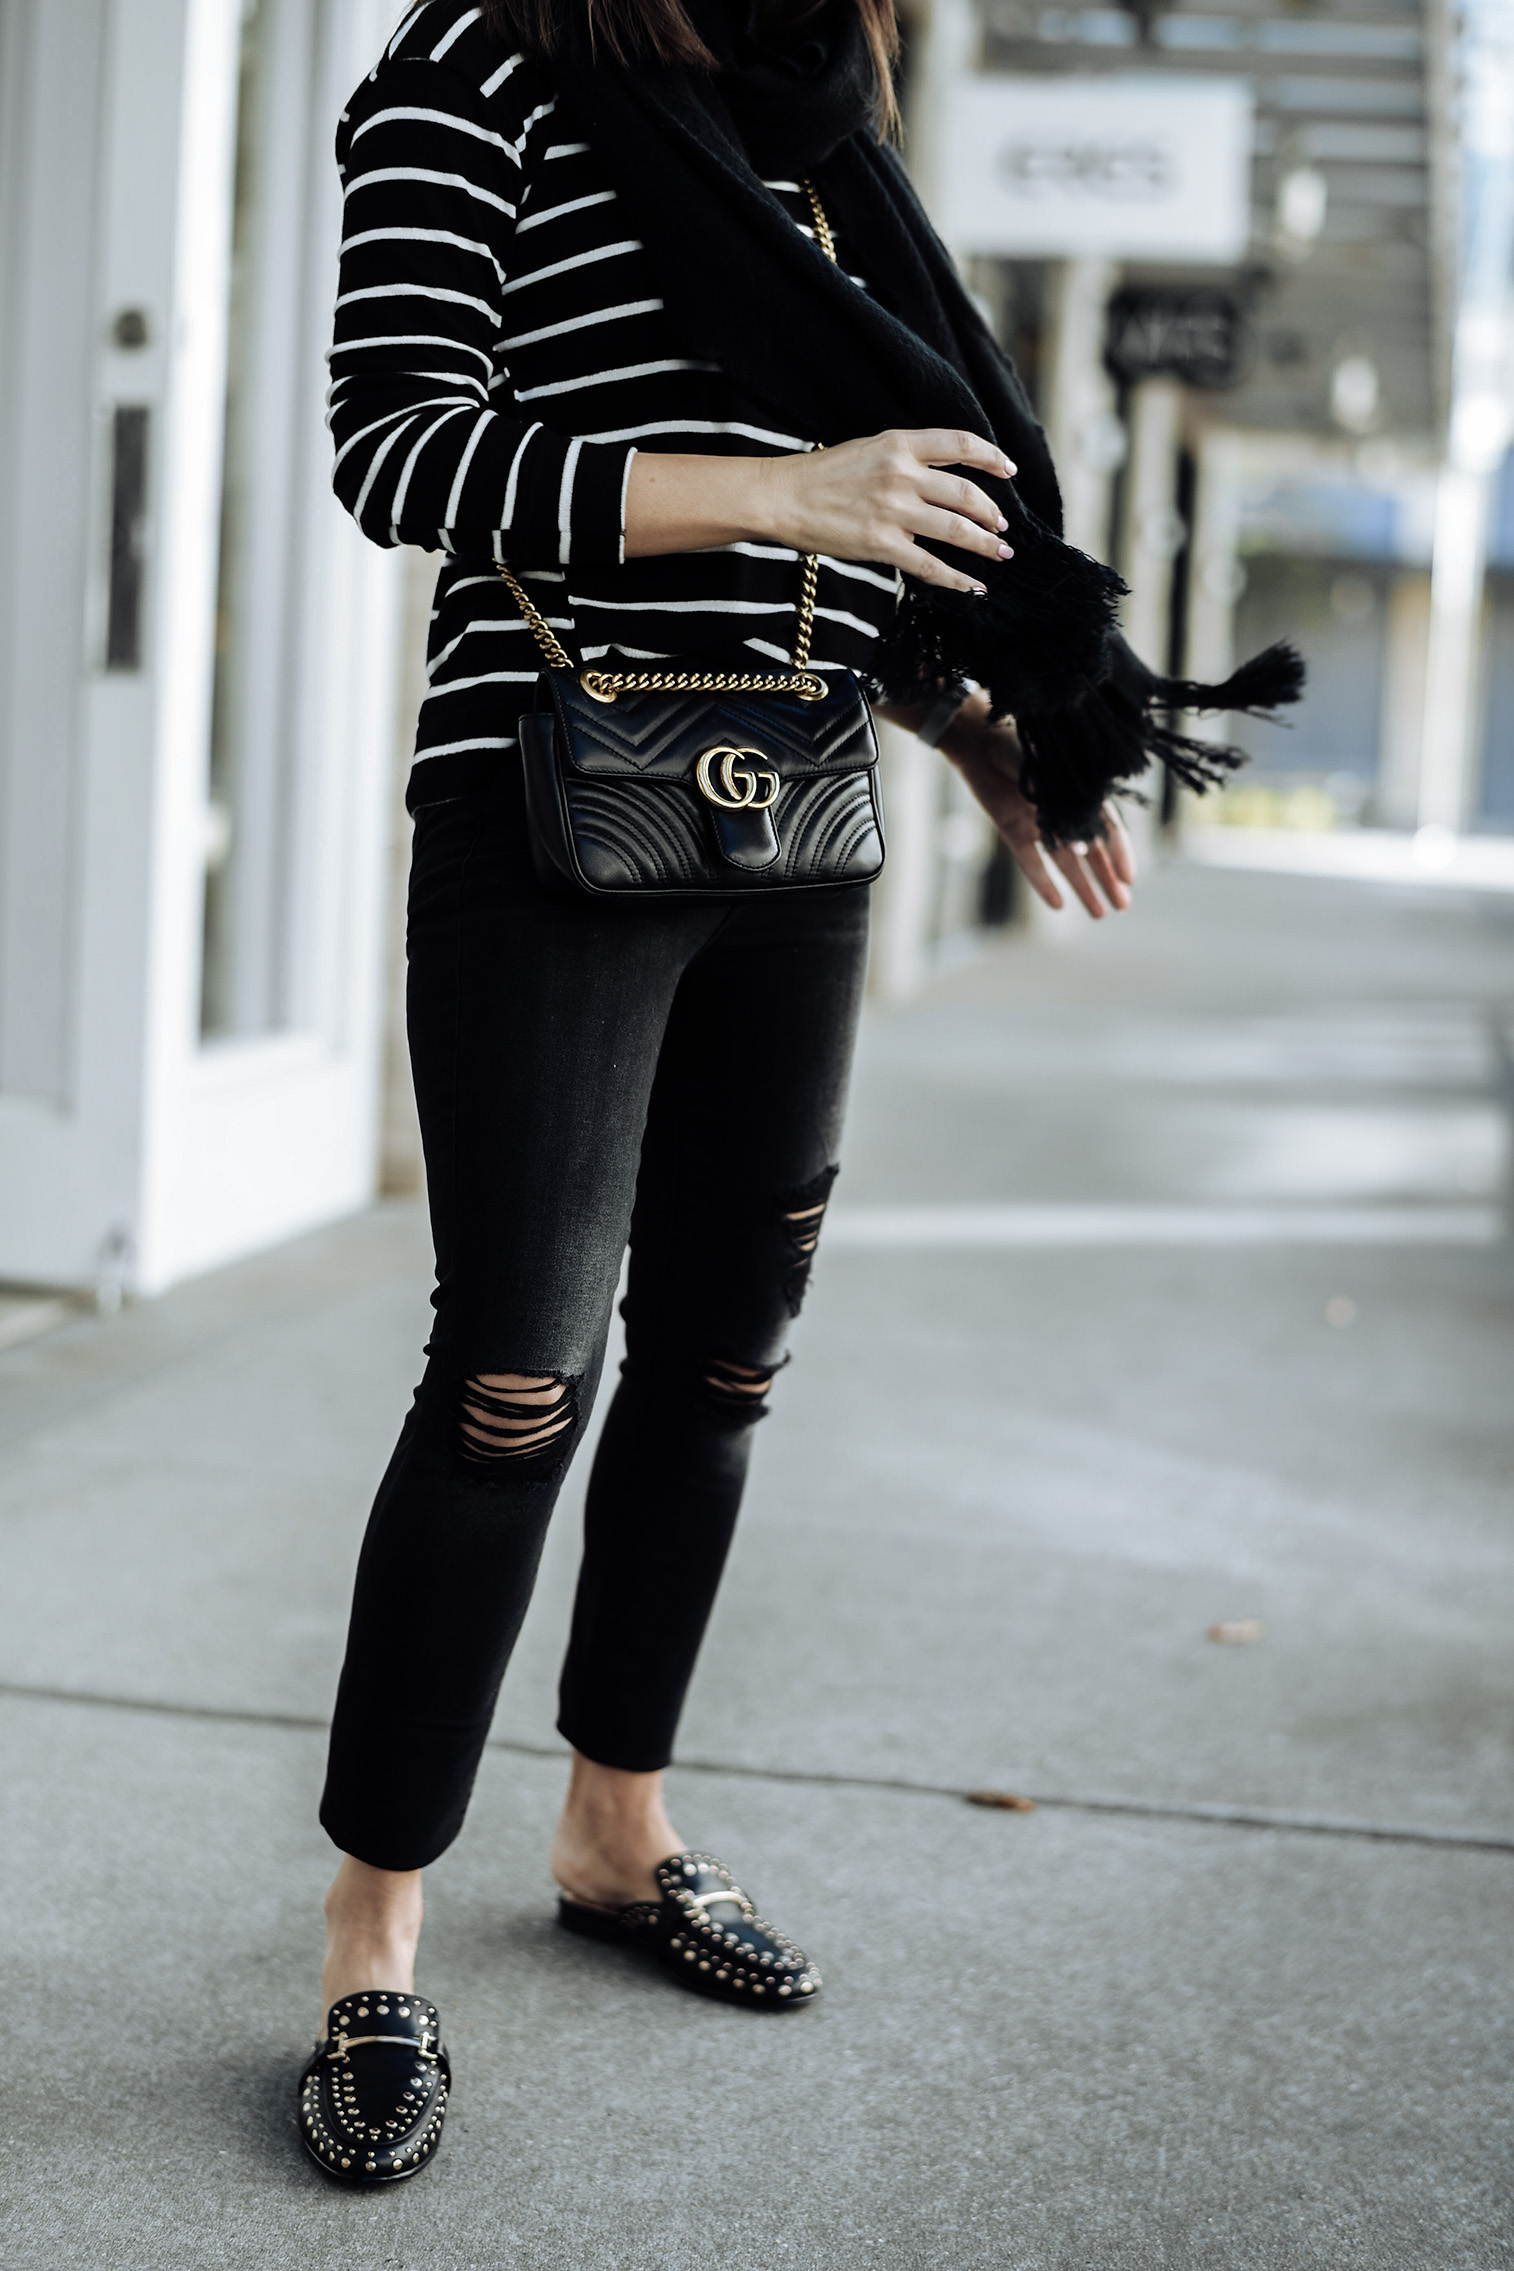 Flats | 7 For All Mankind Ankle Skinny Jeans | Striped sweater | Fringe scarf | Gucci Marmont bag |Tiffany Jais fashion and lifestyle blogger of Flaunt and Center | Houston fashion blogger | Fall denim with Zappos| Streetstyle blog #streetstyle #fashionblog #style # fall style #slides